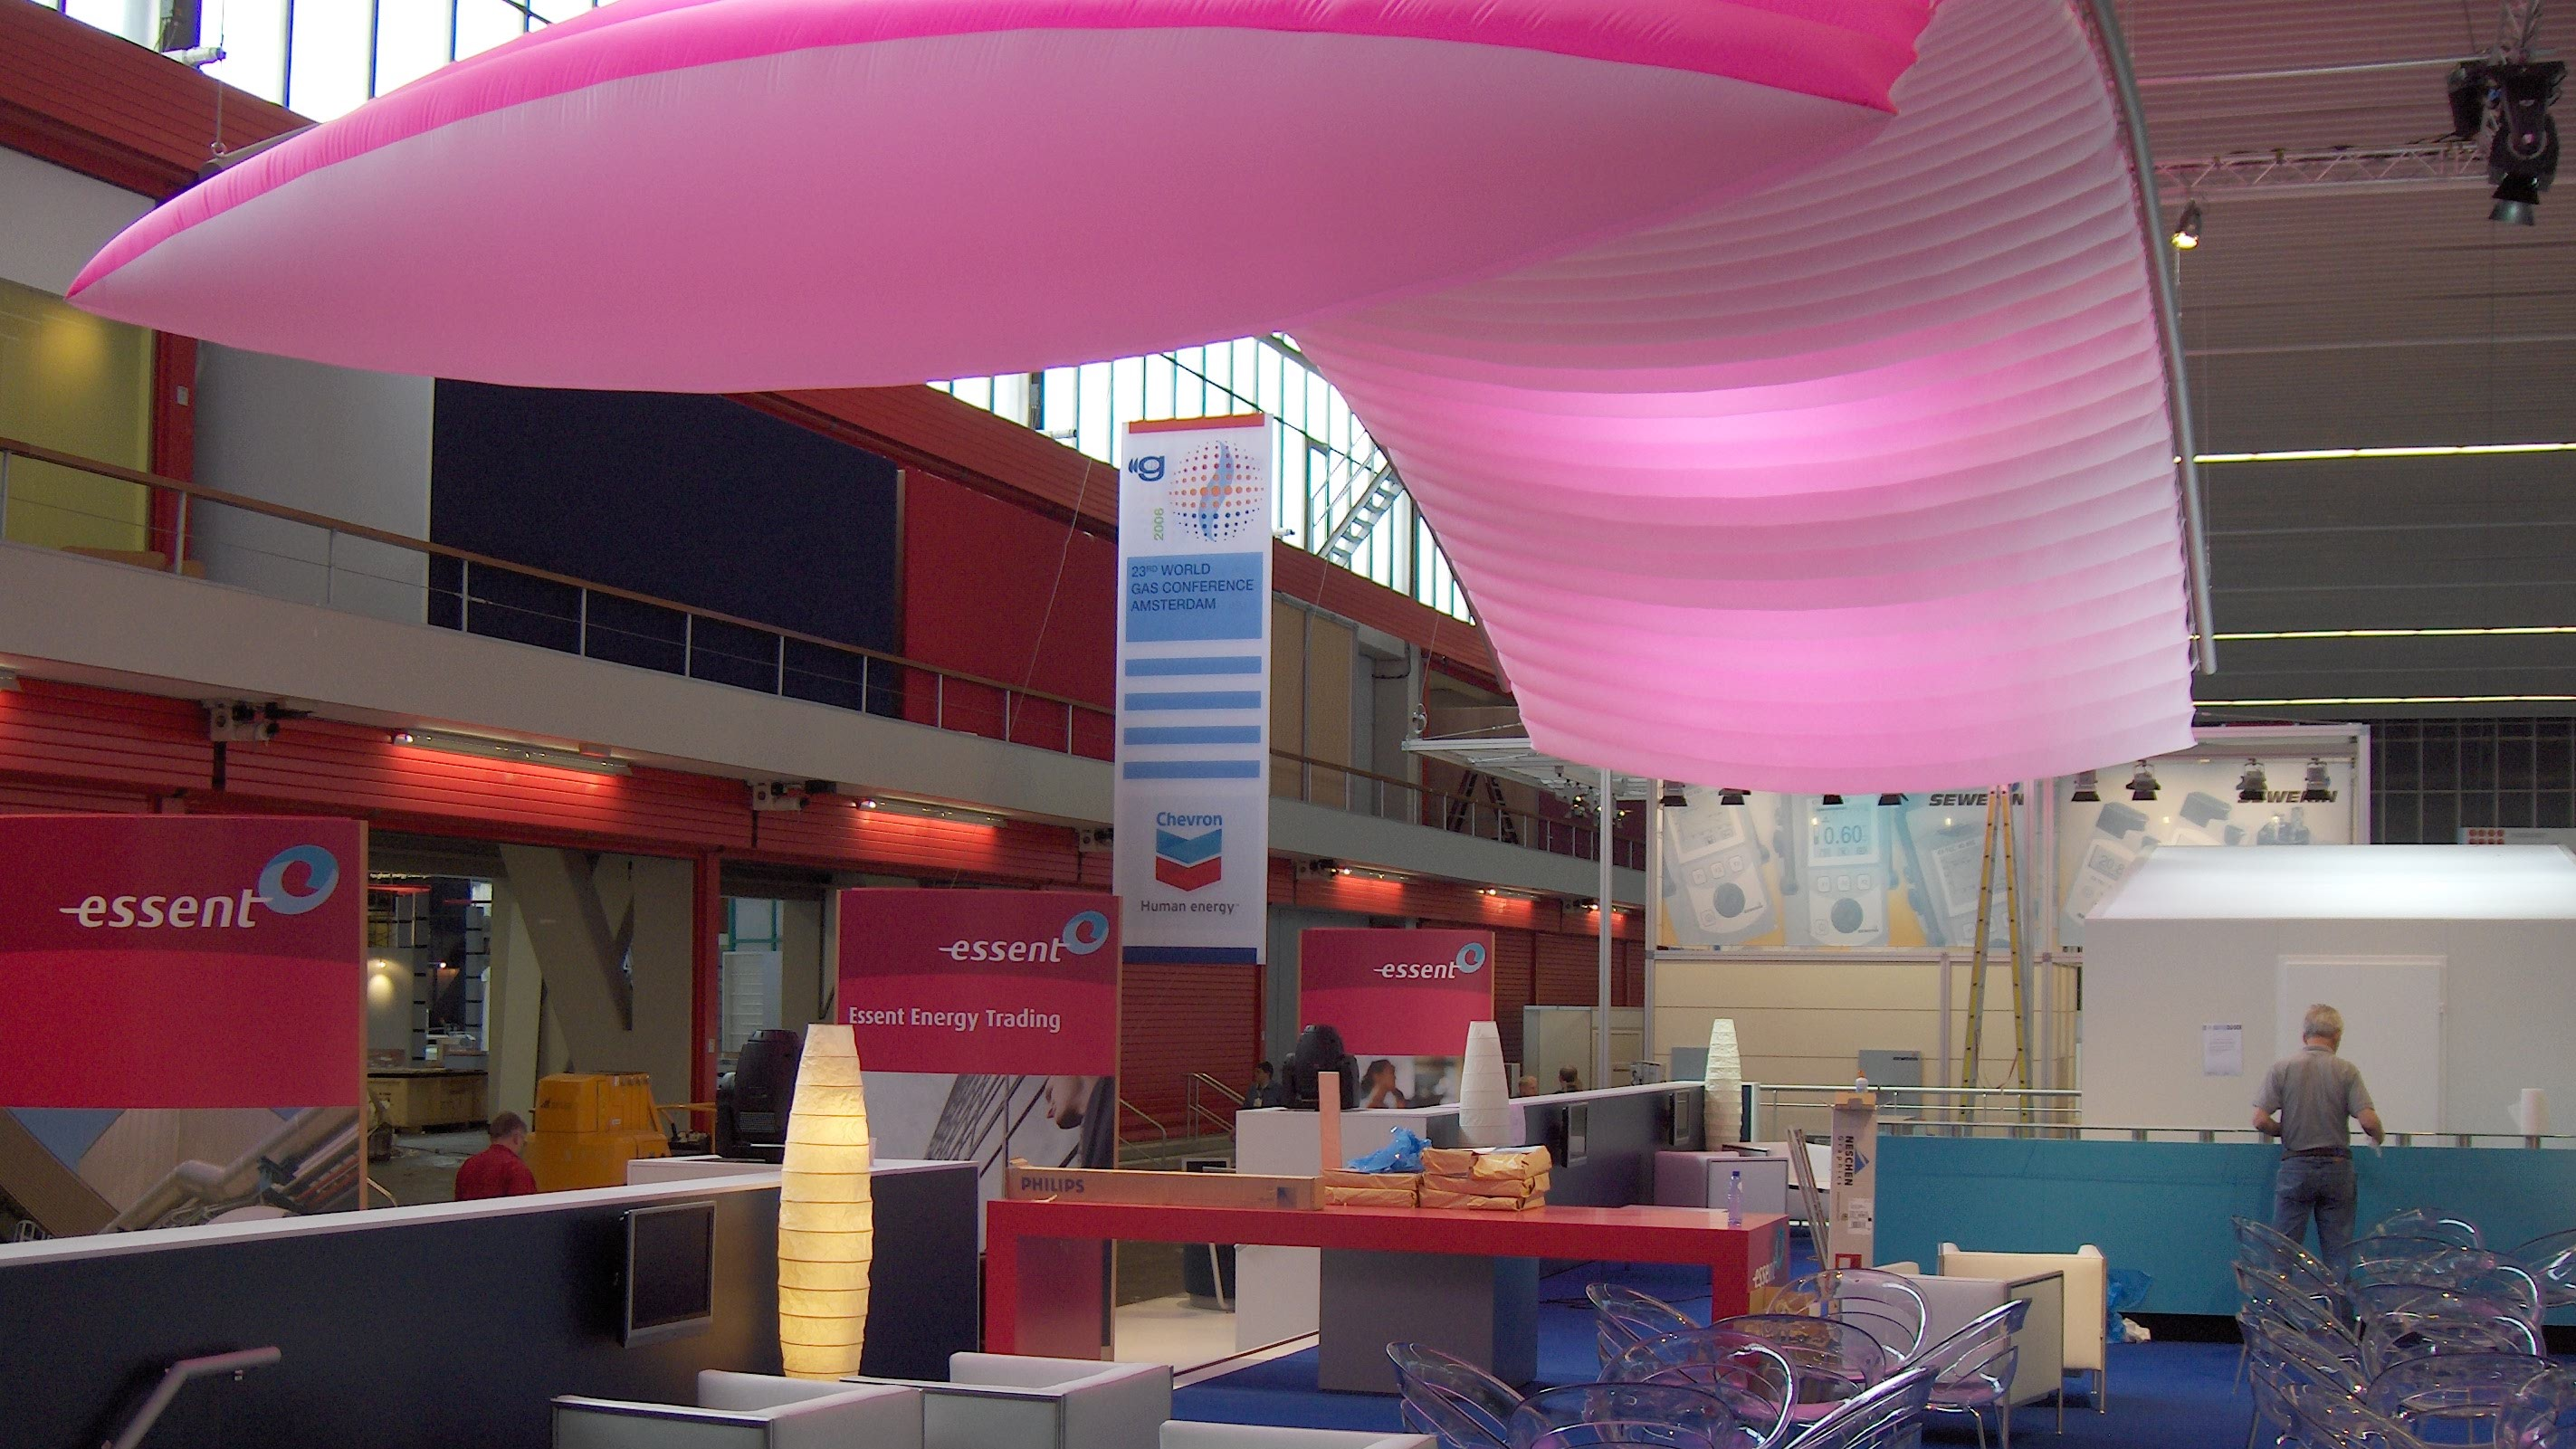 essent - beurs - publi air - inflatable - roze - stand - aankleding